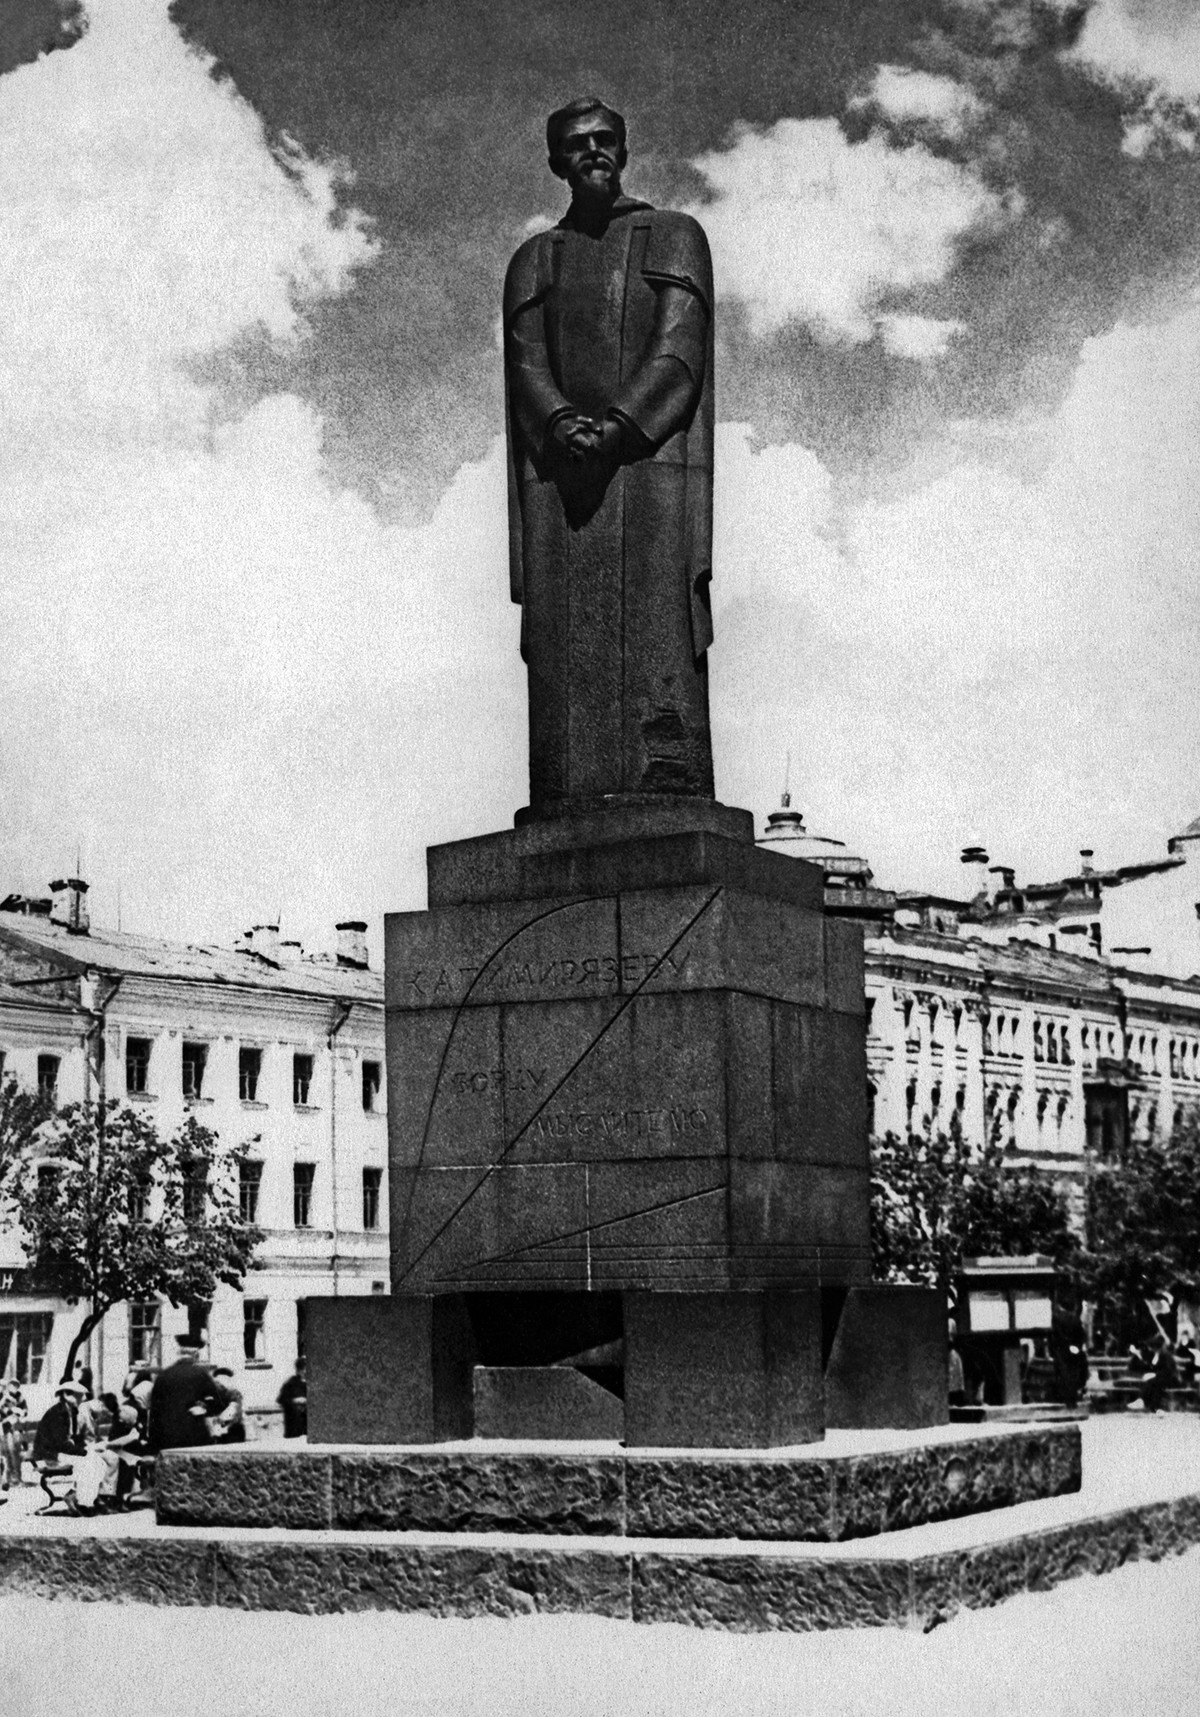 The monument in 1930s.